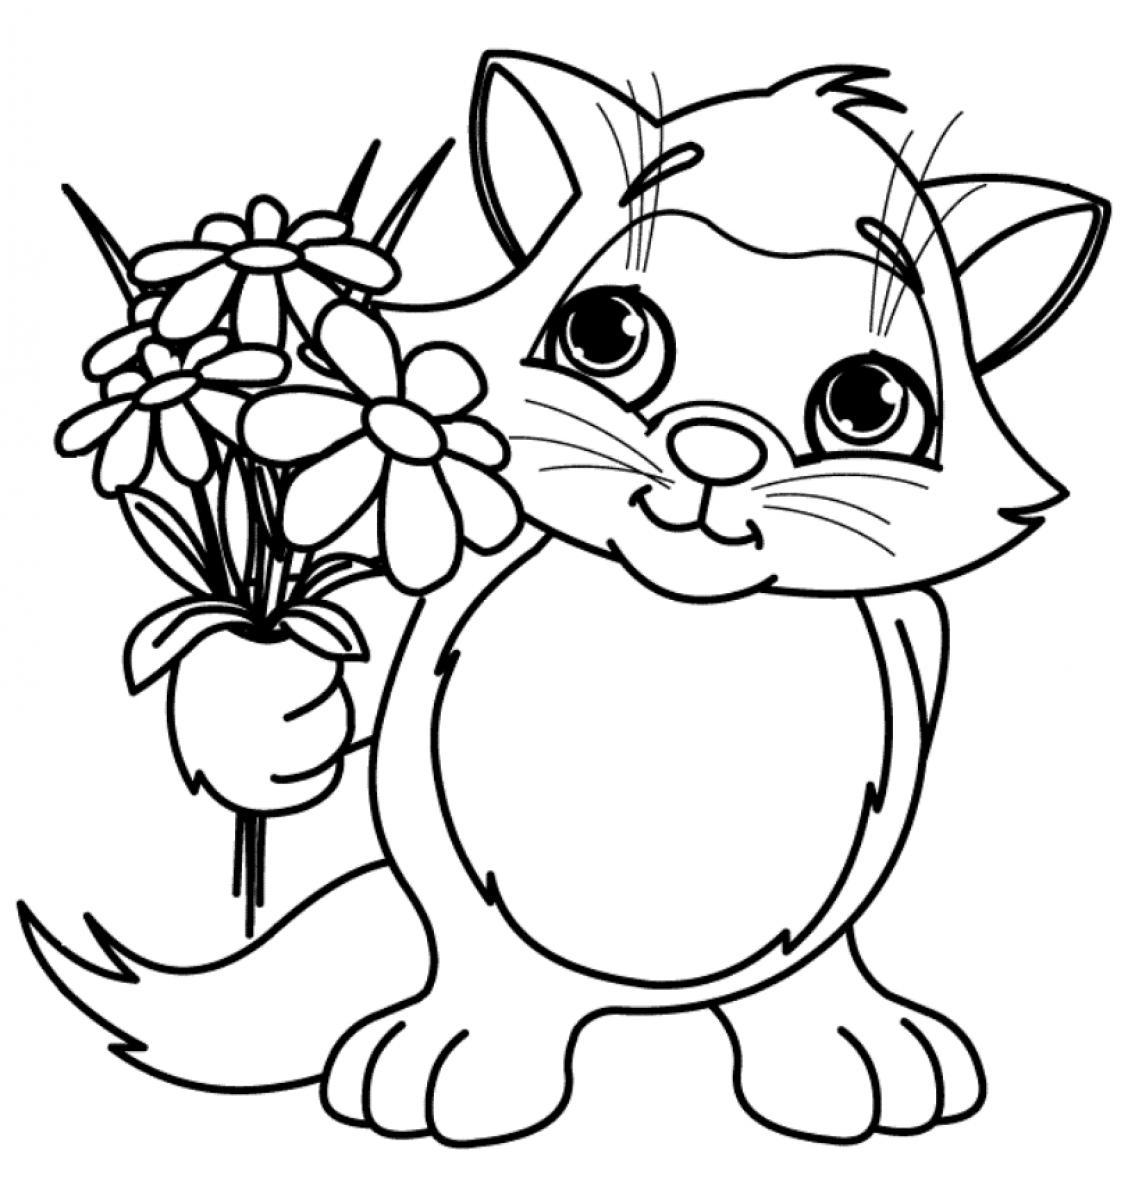 flower coloring pages to print summer flowers coloring pages 10 free fun printable to print coloring pages flower